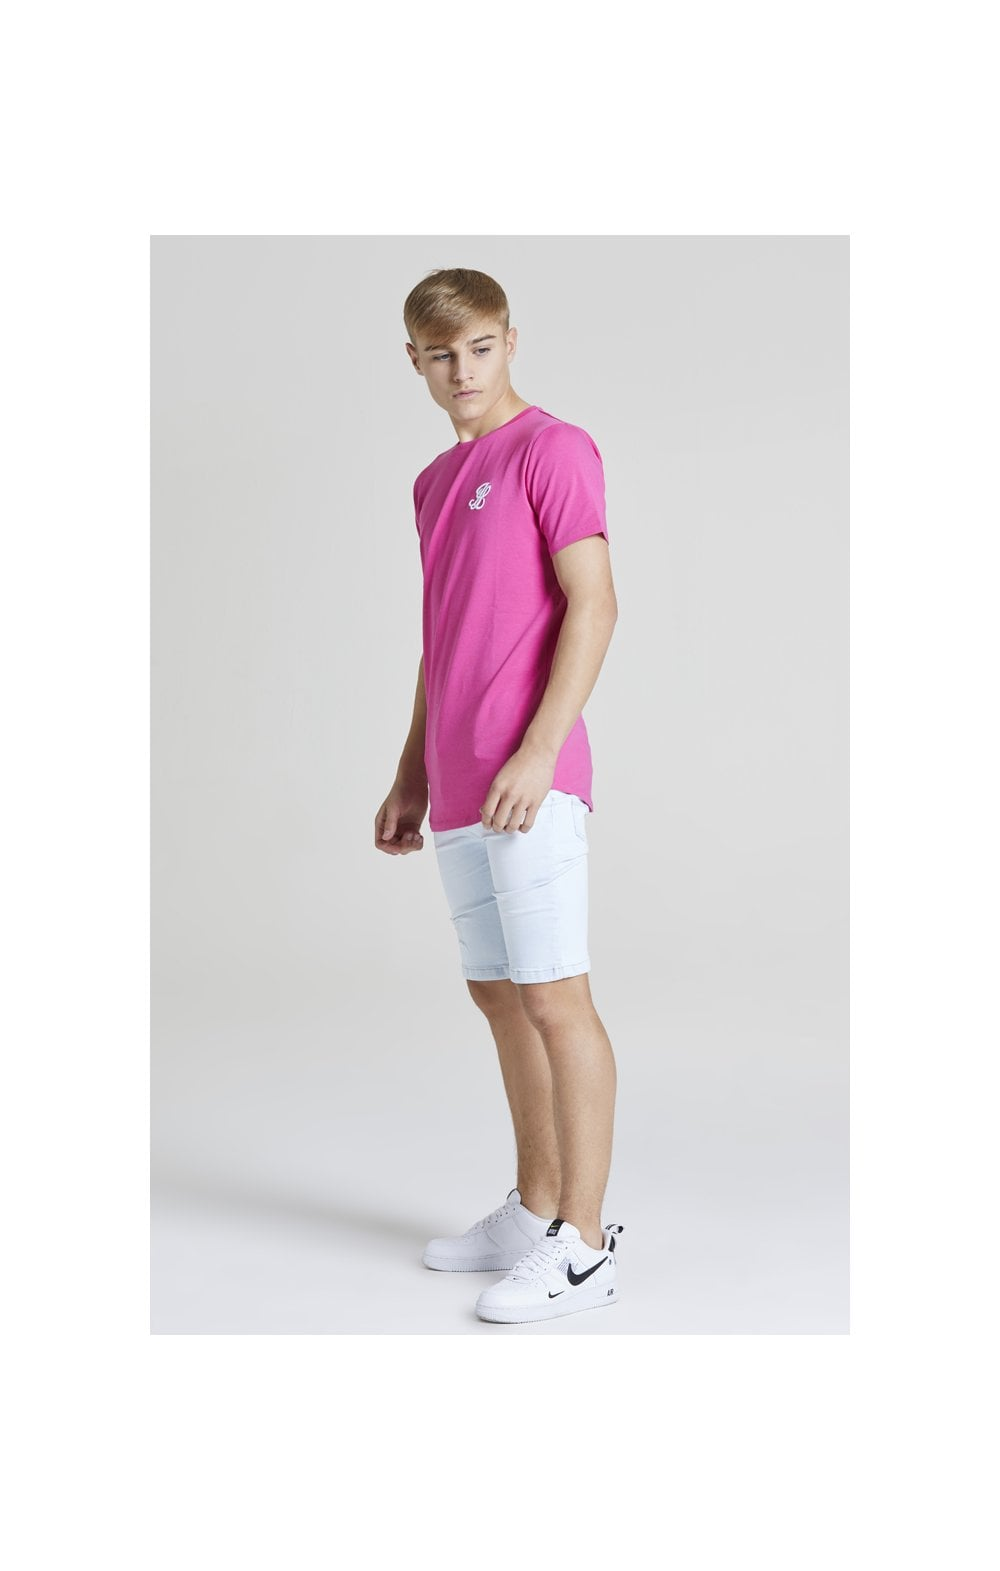 Illusive London Core Tee - Pink (2)